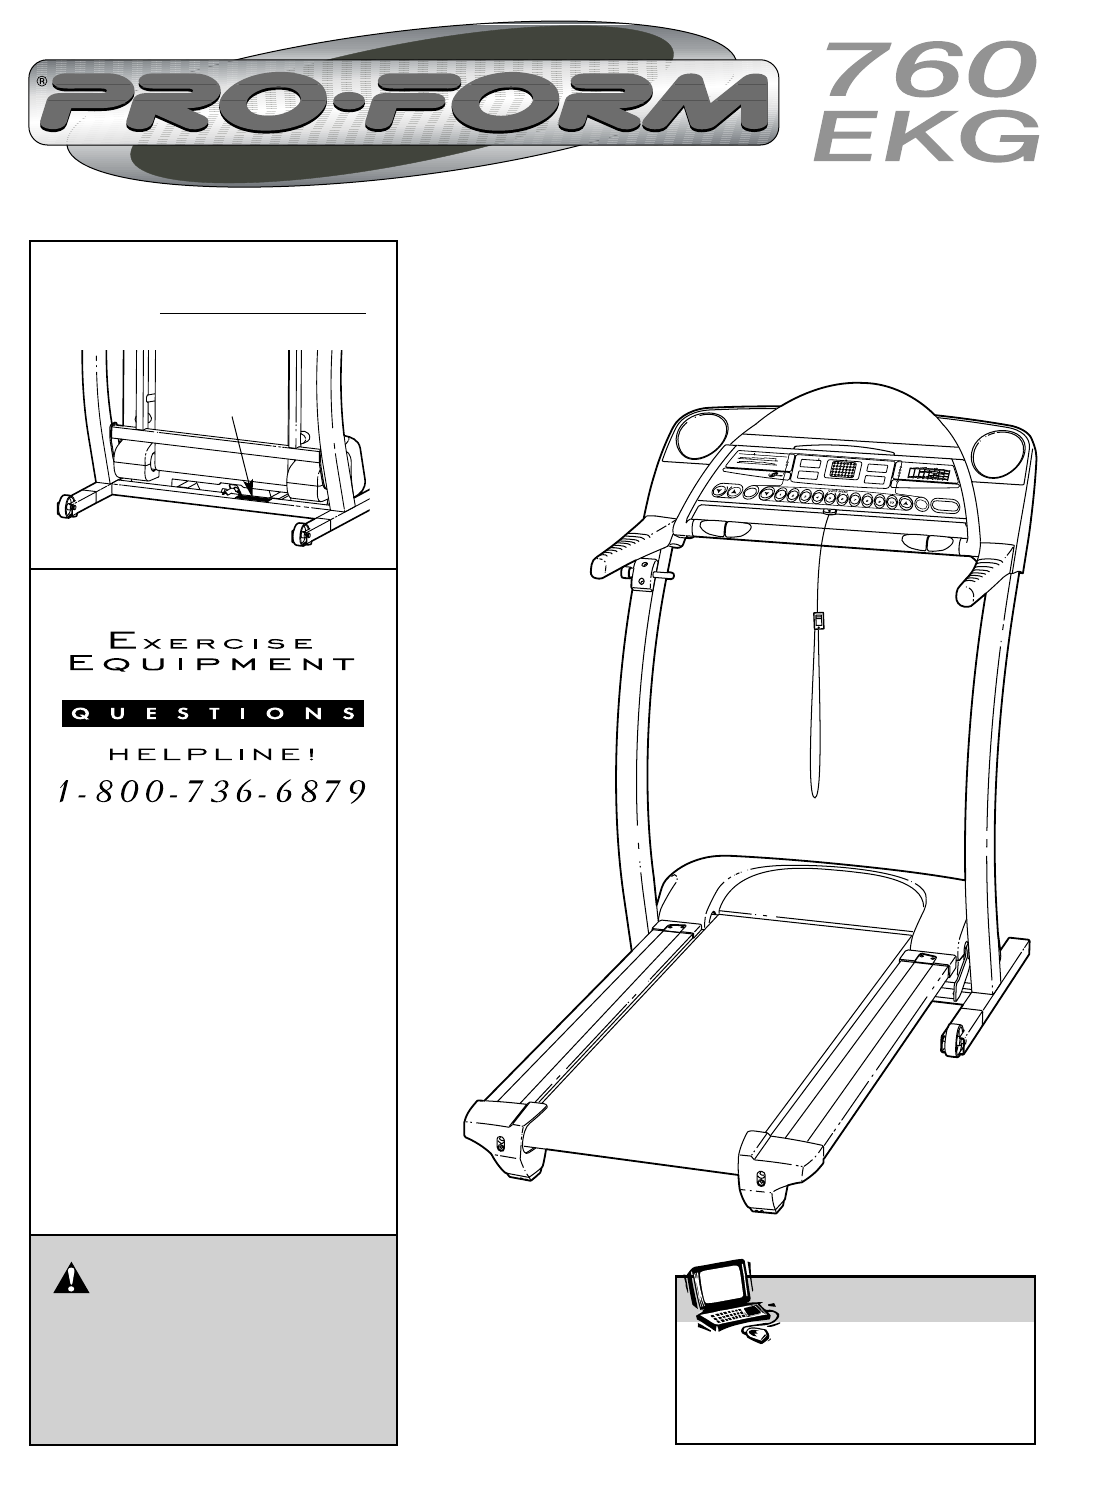 proform treadmill 760 ekg user guide